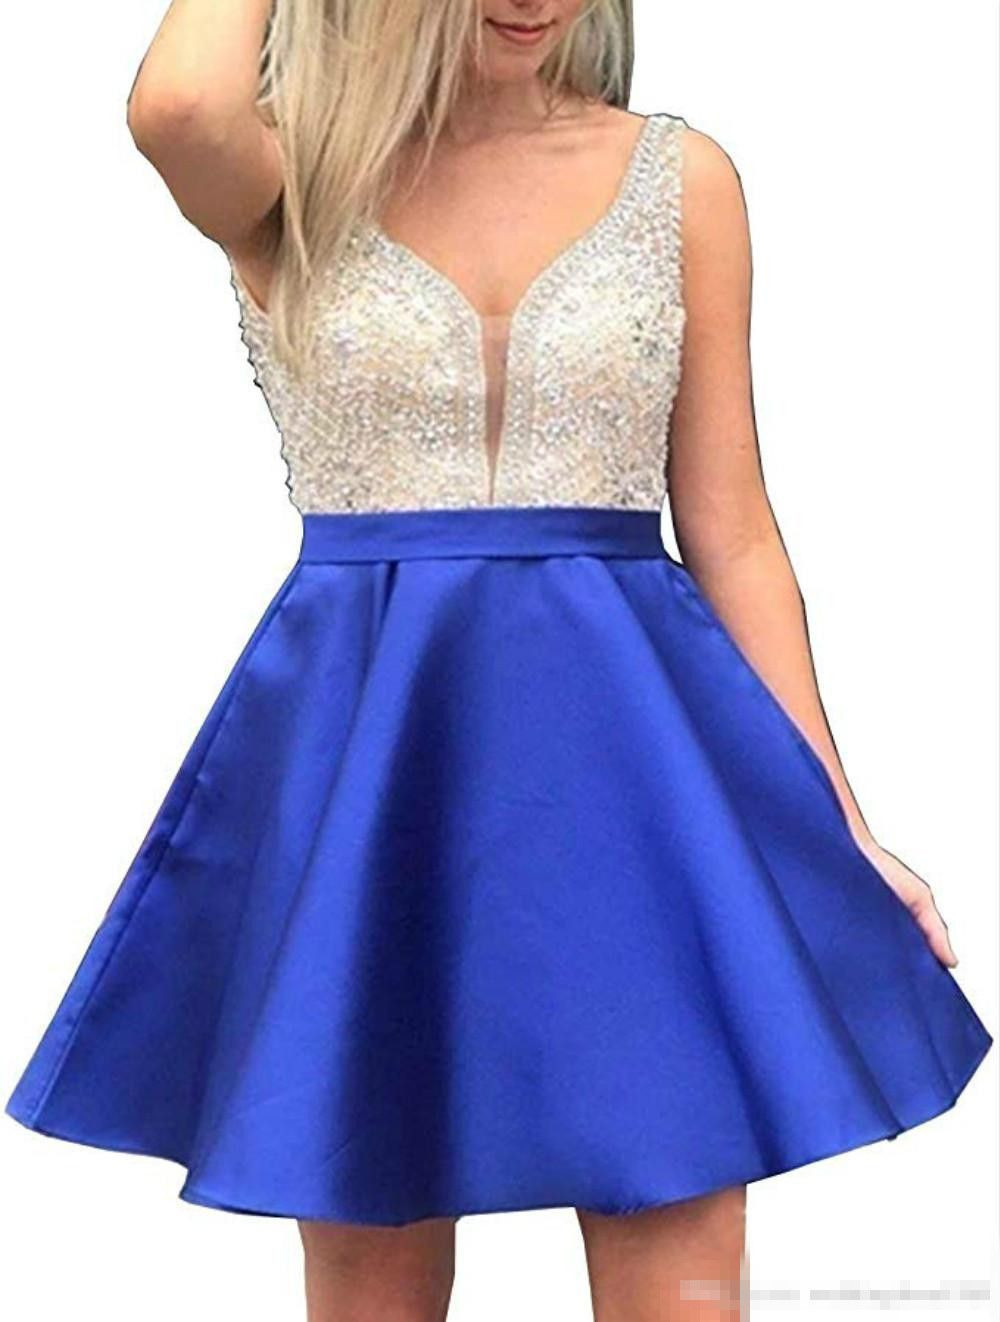 Charming V-Neck Homecoming Dresses With Beads Sequin Plus Size Satin Party Prom Short Juniors Graduation Knee Length Ball Gowns Club Wear